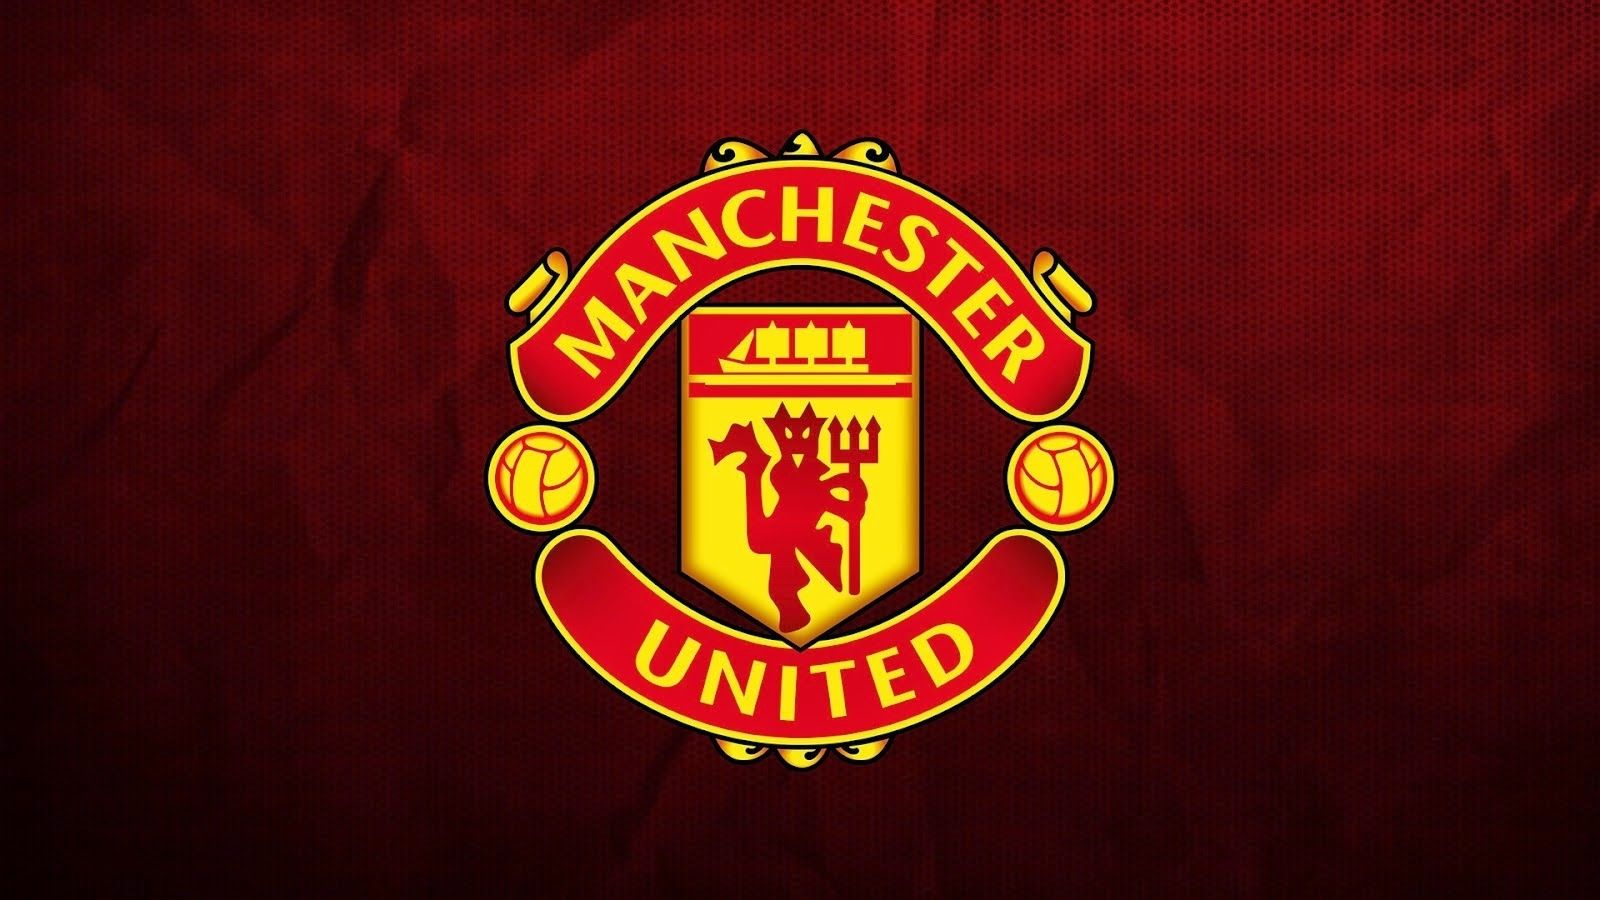 10 Top Manchester United Wallpaper Download Full Hd 1920 1080 For